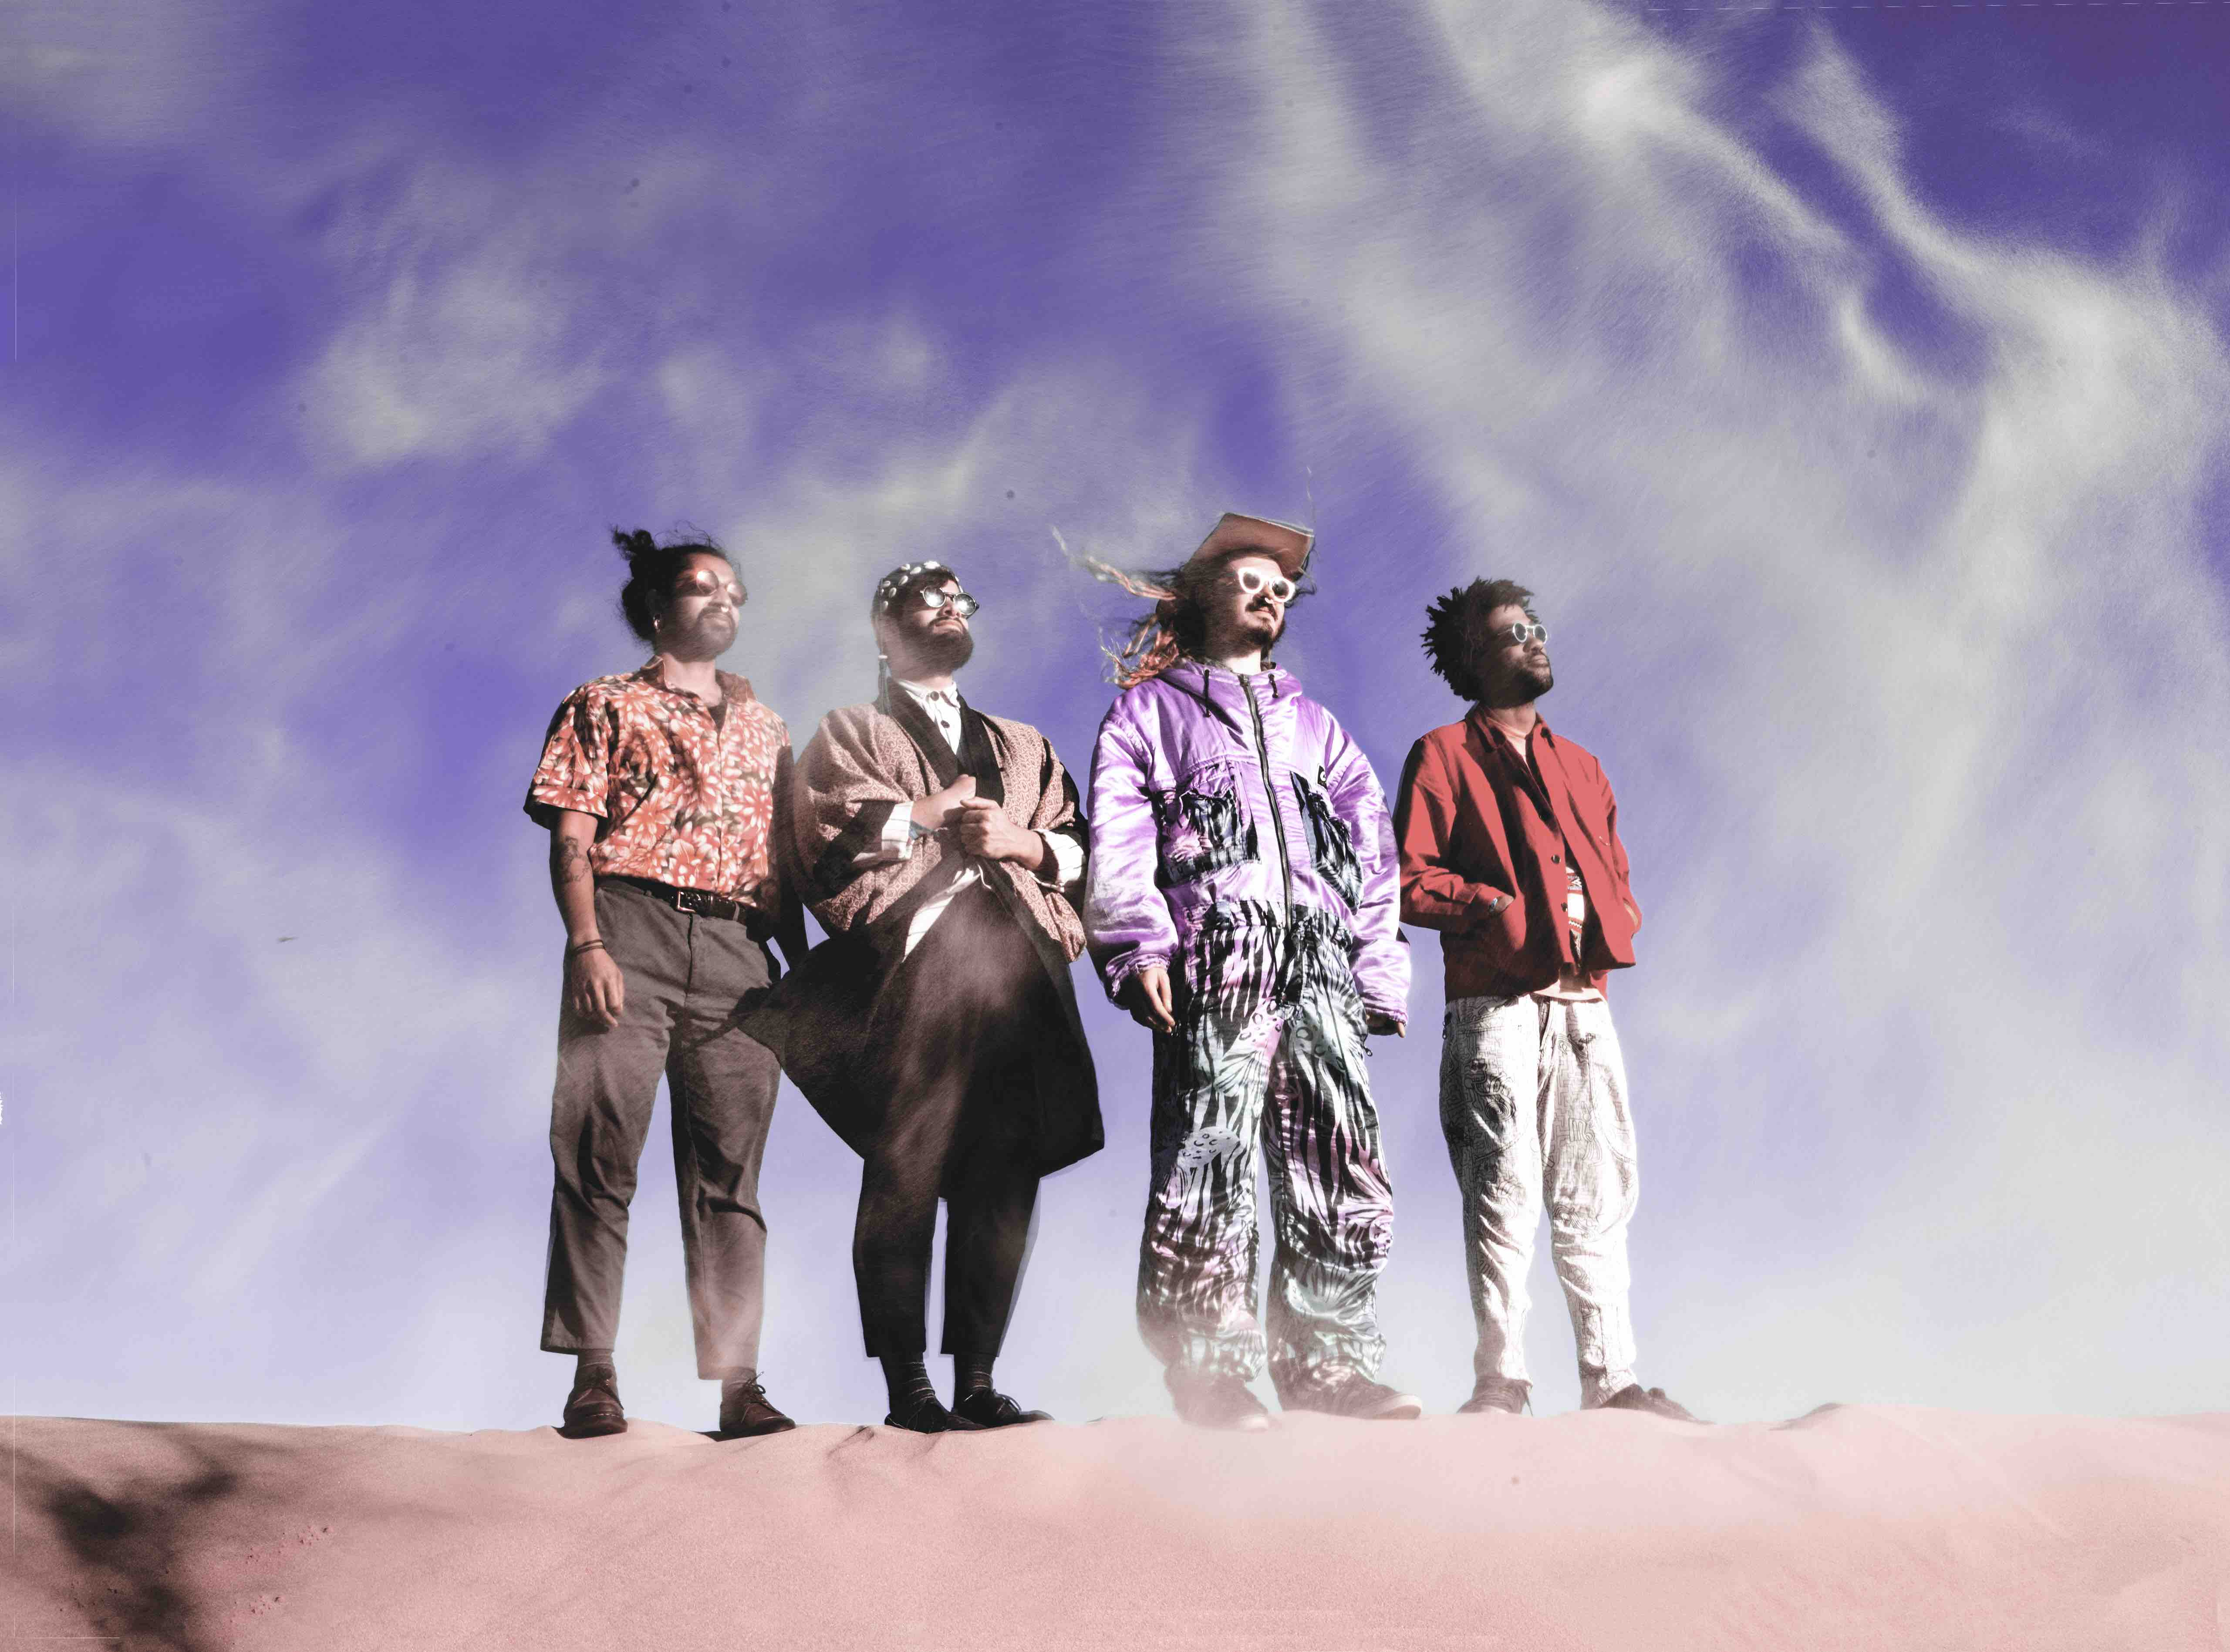 Beat Hotel The Bar - Friday Night In Playlists by Flamingods